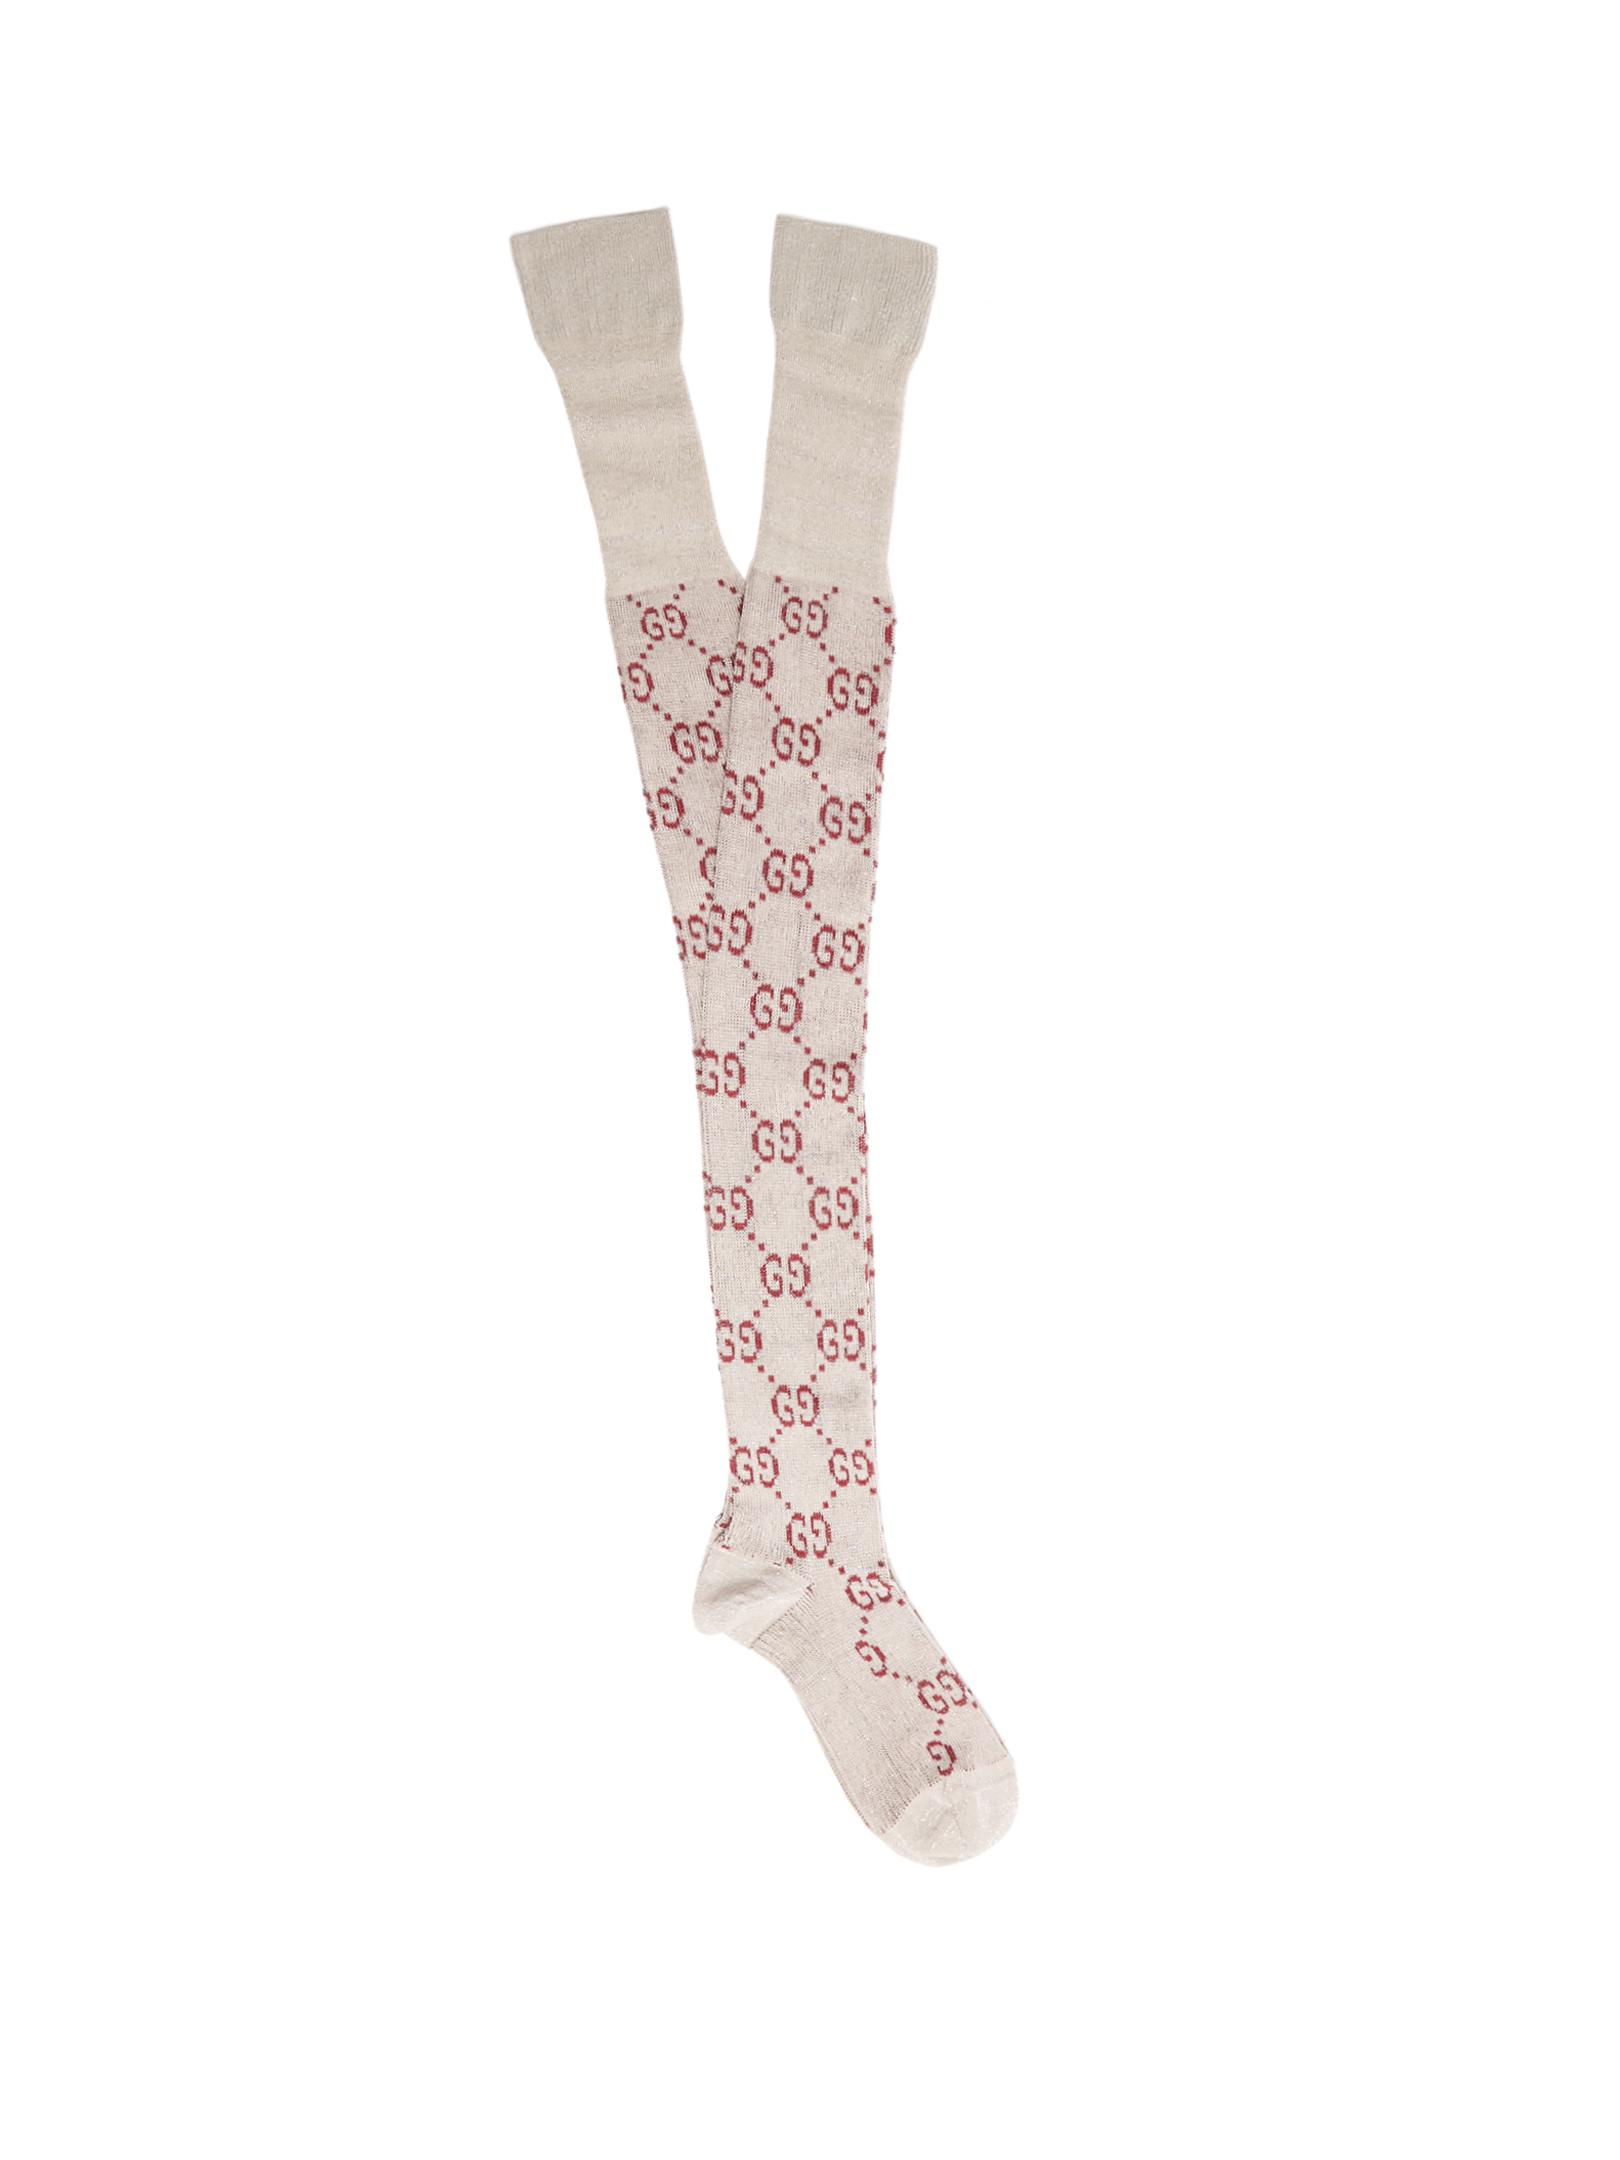 13c6278fdc427 Gucci Gg Cotton-blend Over-the-knee Socks in White - Lyst